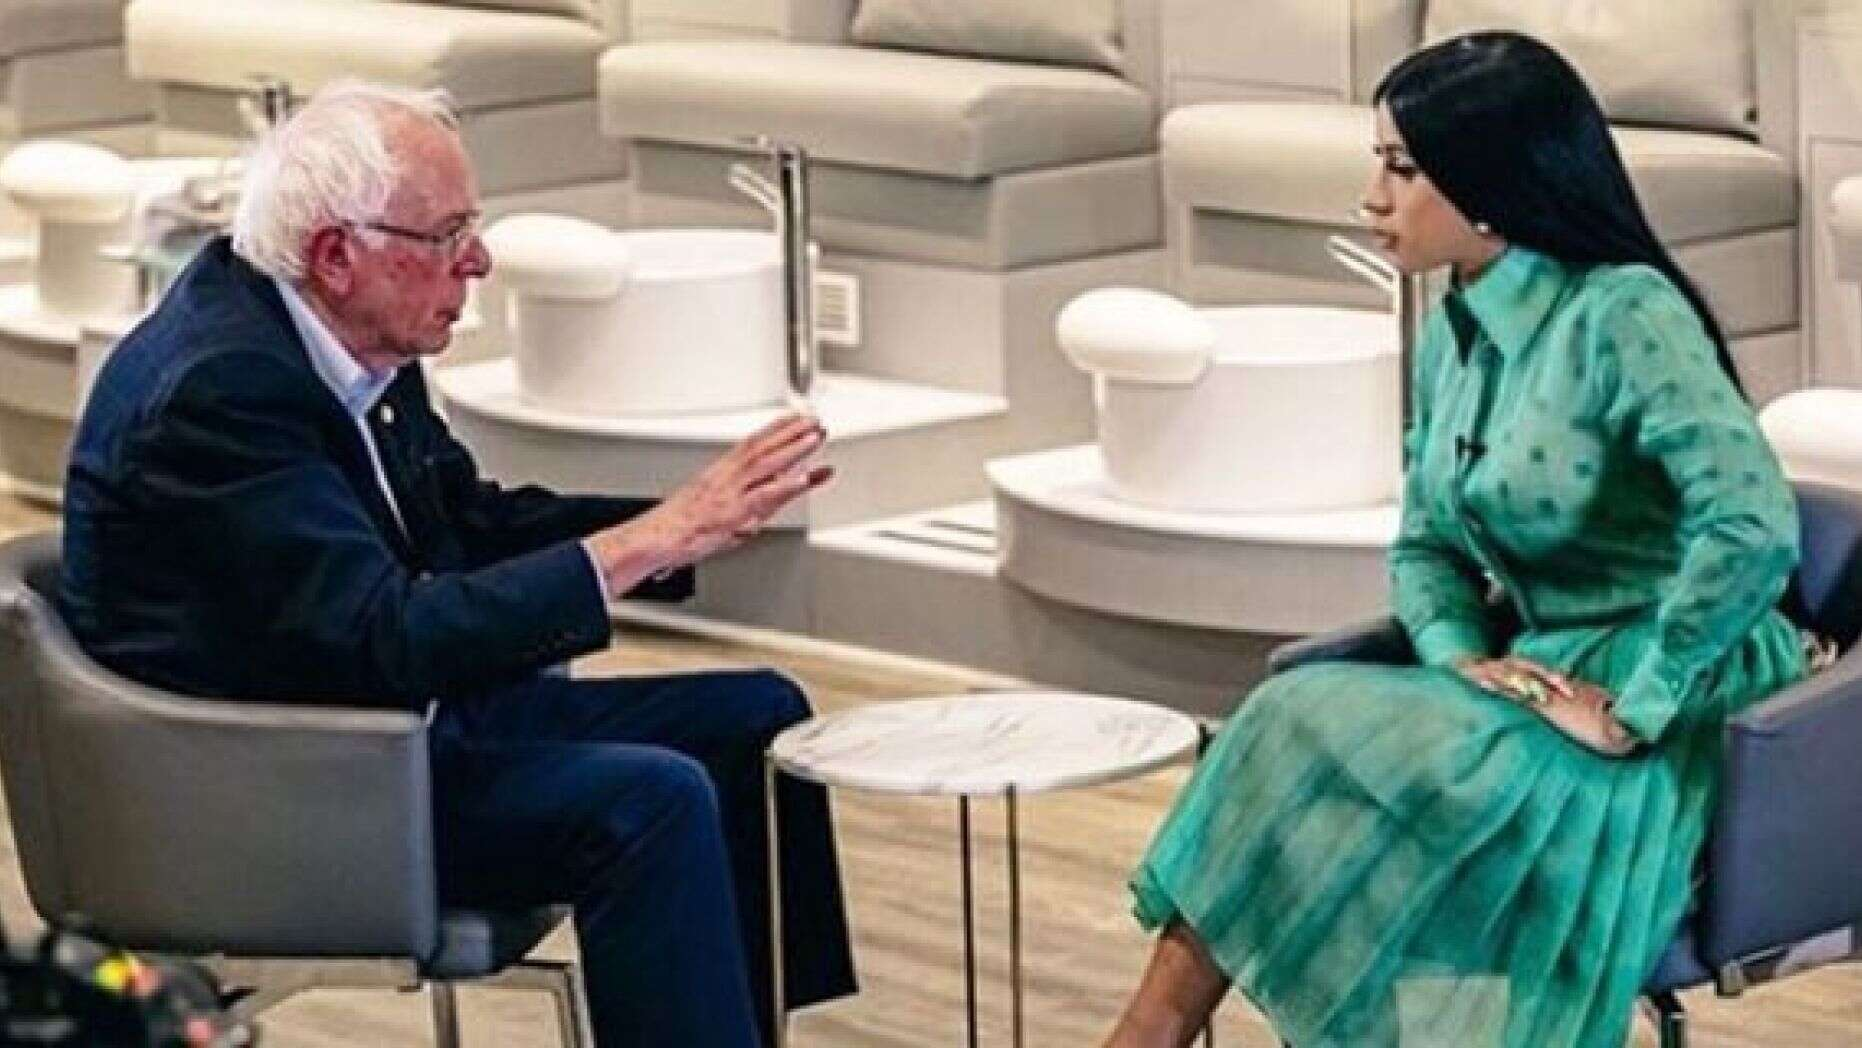 Cardi B Shares Clip of Sit-Down with Bernie Sanders As They Talk Wages